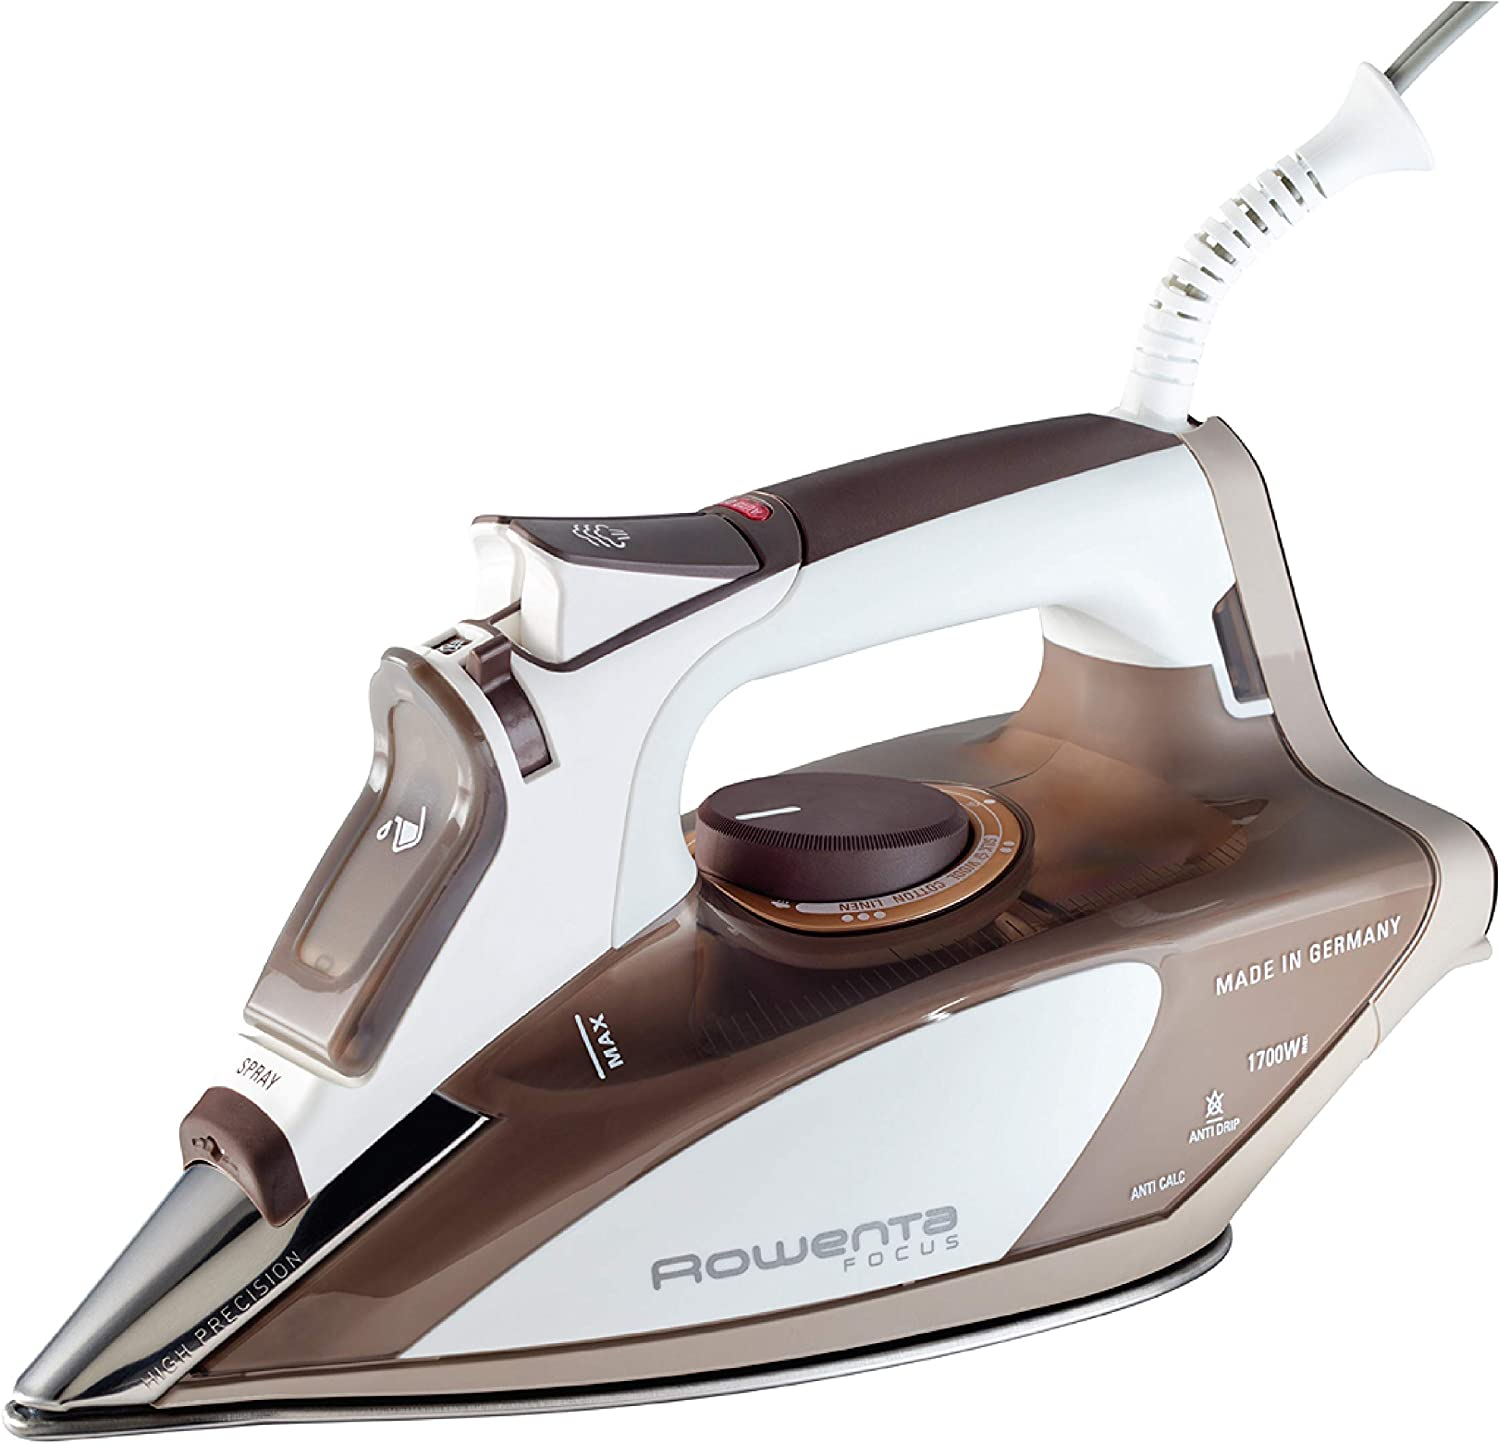 Rowenta DW5080 Micro Steam Iron